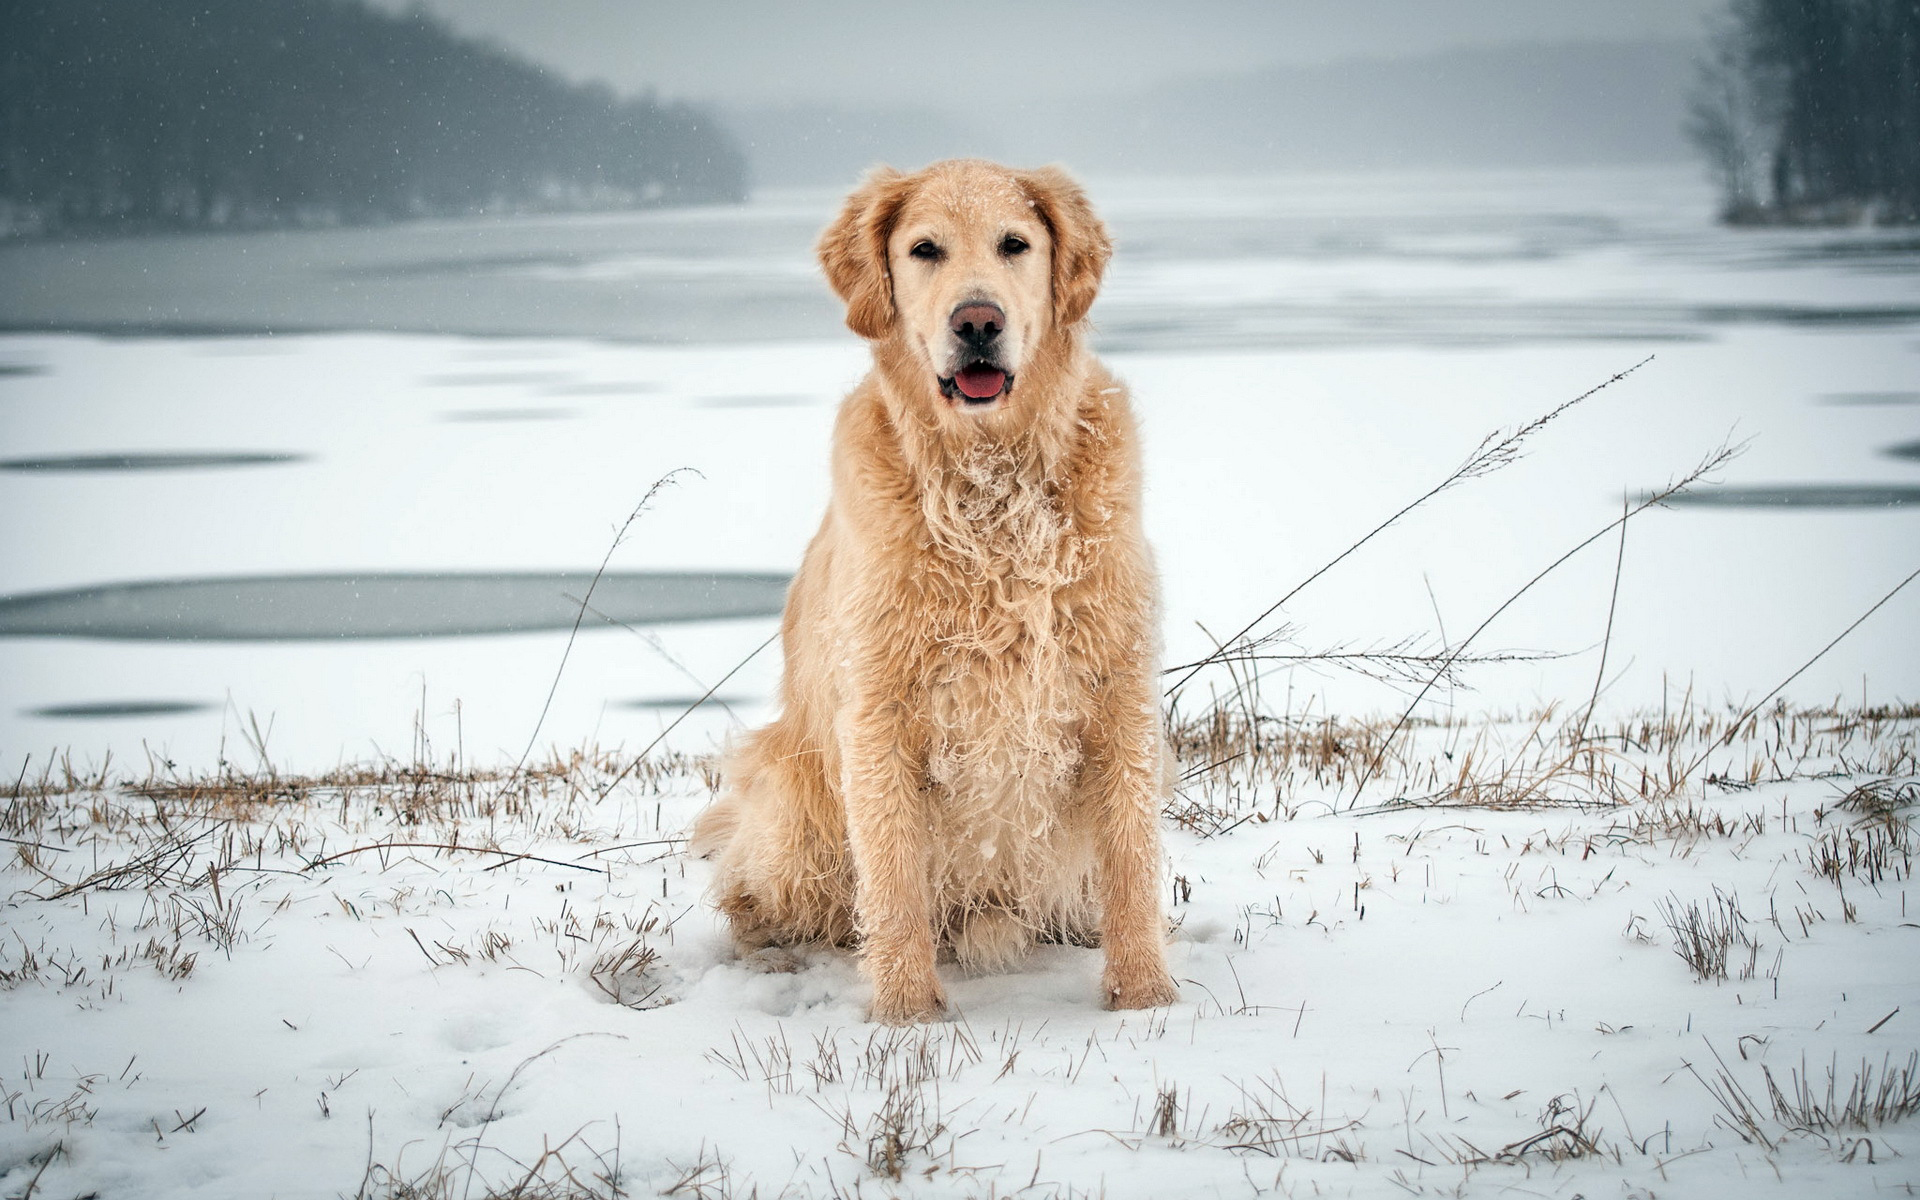 Download Winter Snow Dog Wallpaper | Free Wallpapers